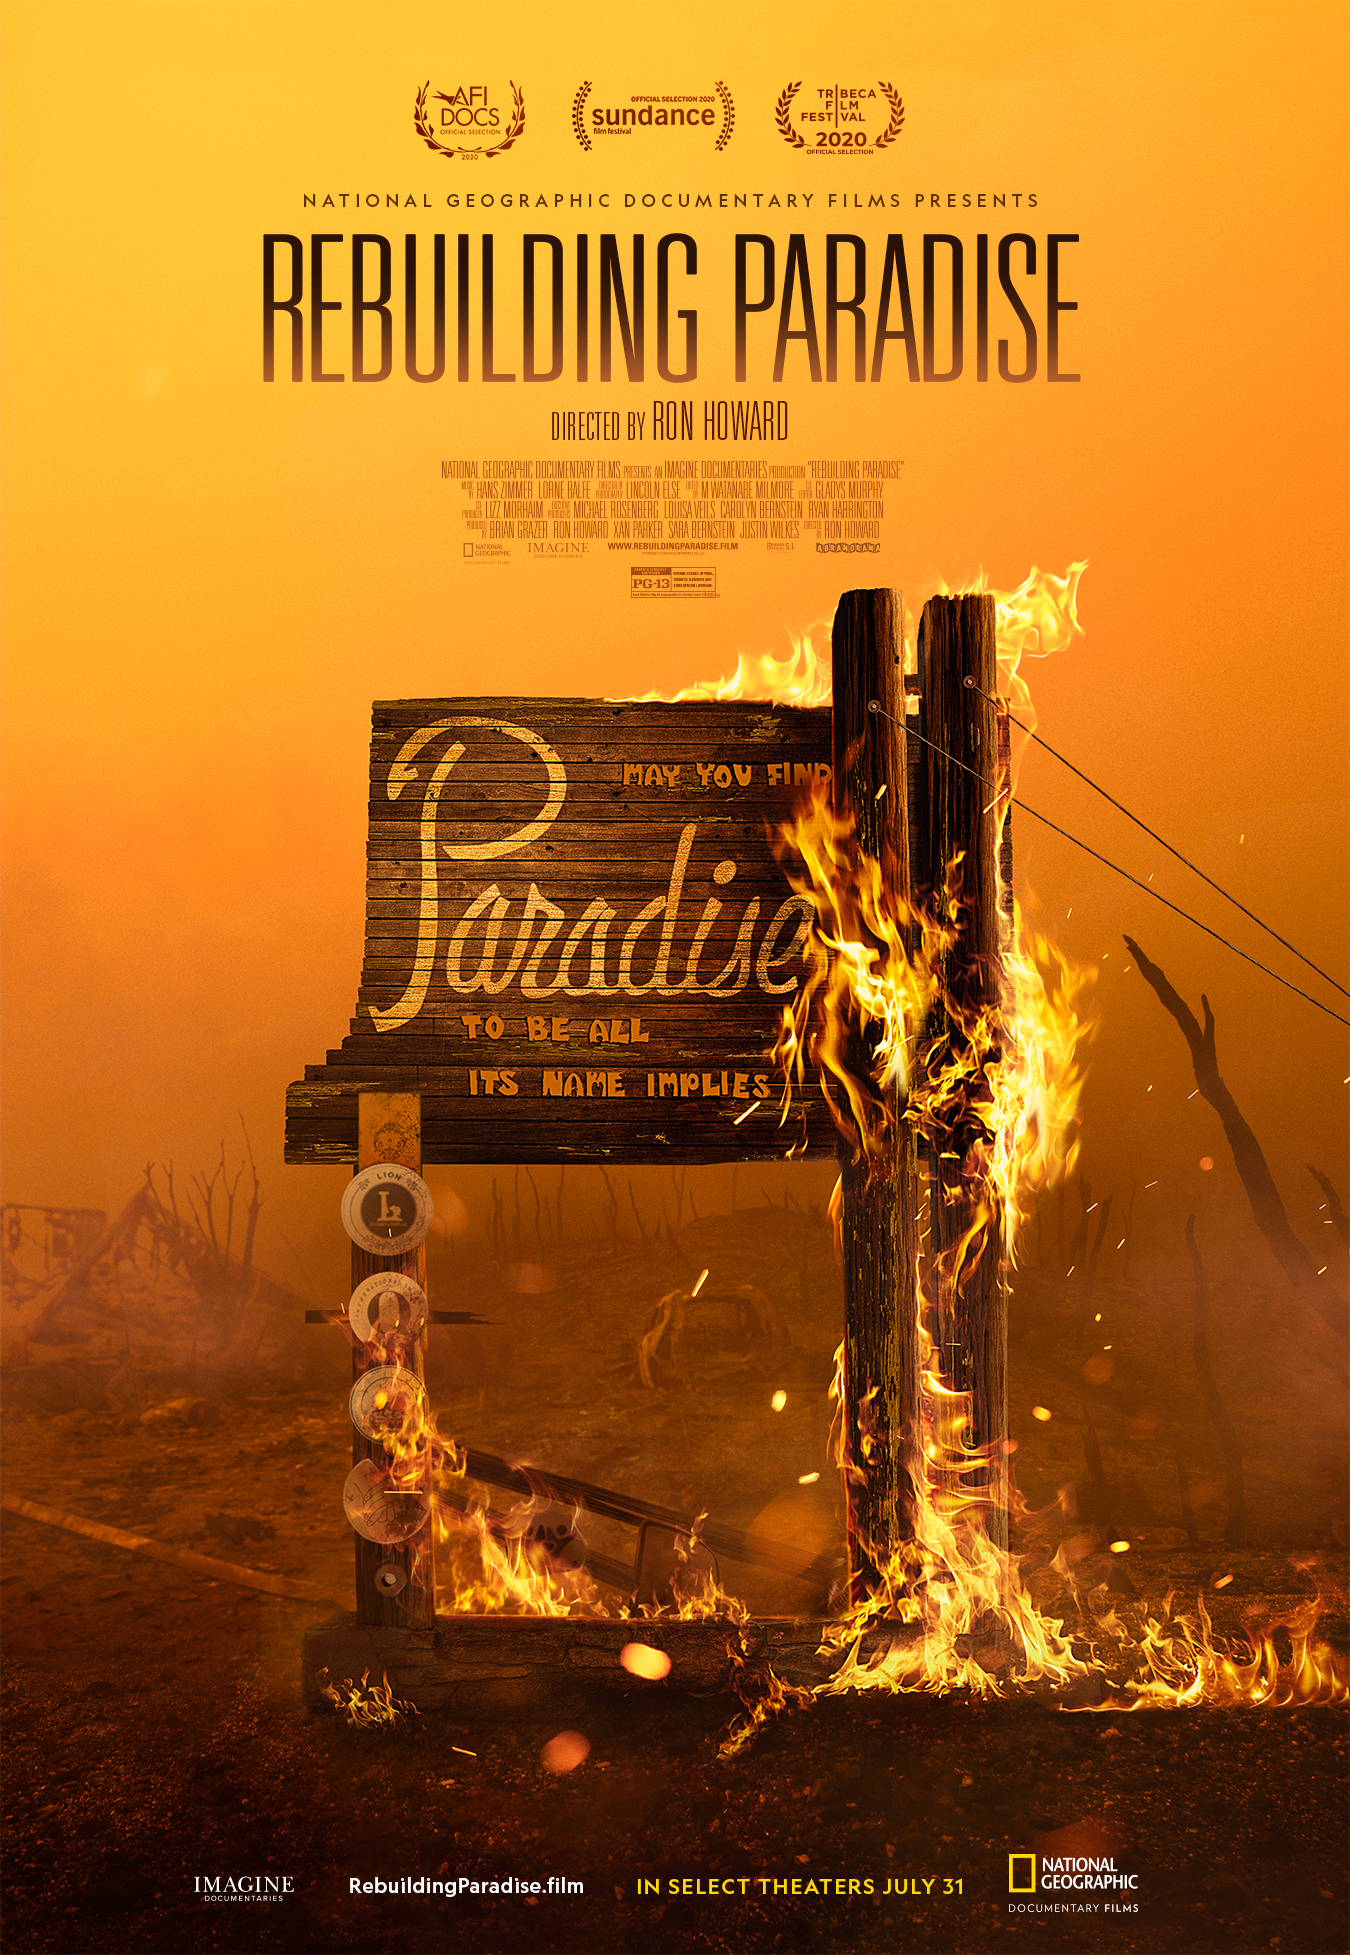 National Geographic Documentary Films Set To Release Academy Award-Winning Director Ron Howard's 'Rebuilding Paradise' In More Than 70 Markets Nationwide On July 31st